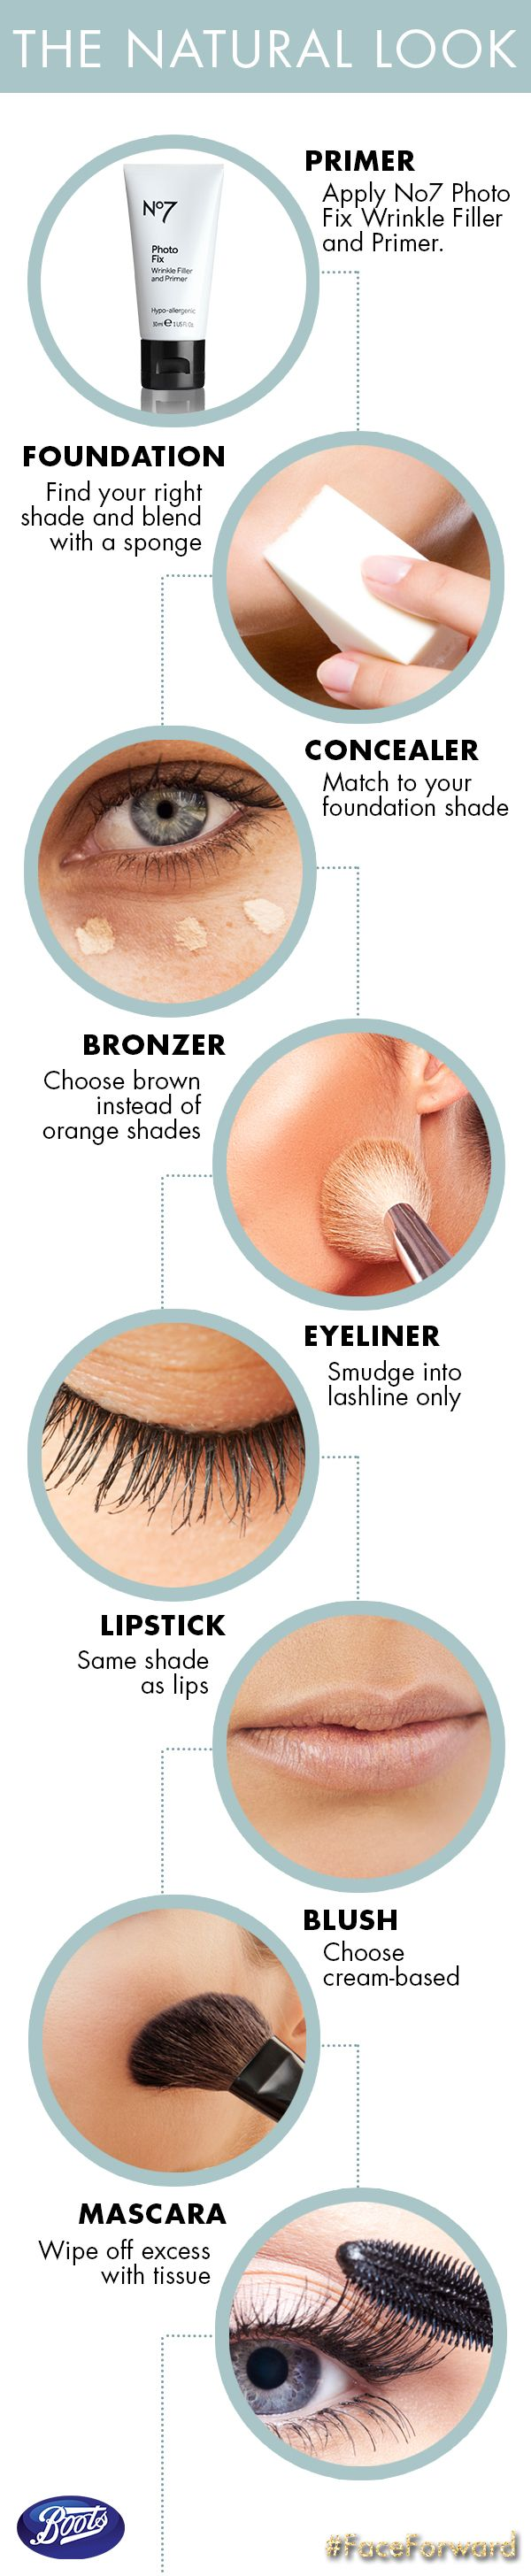 How to get a natural look—keep it simple! via @Boots Beauty USA #faceforward